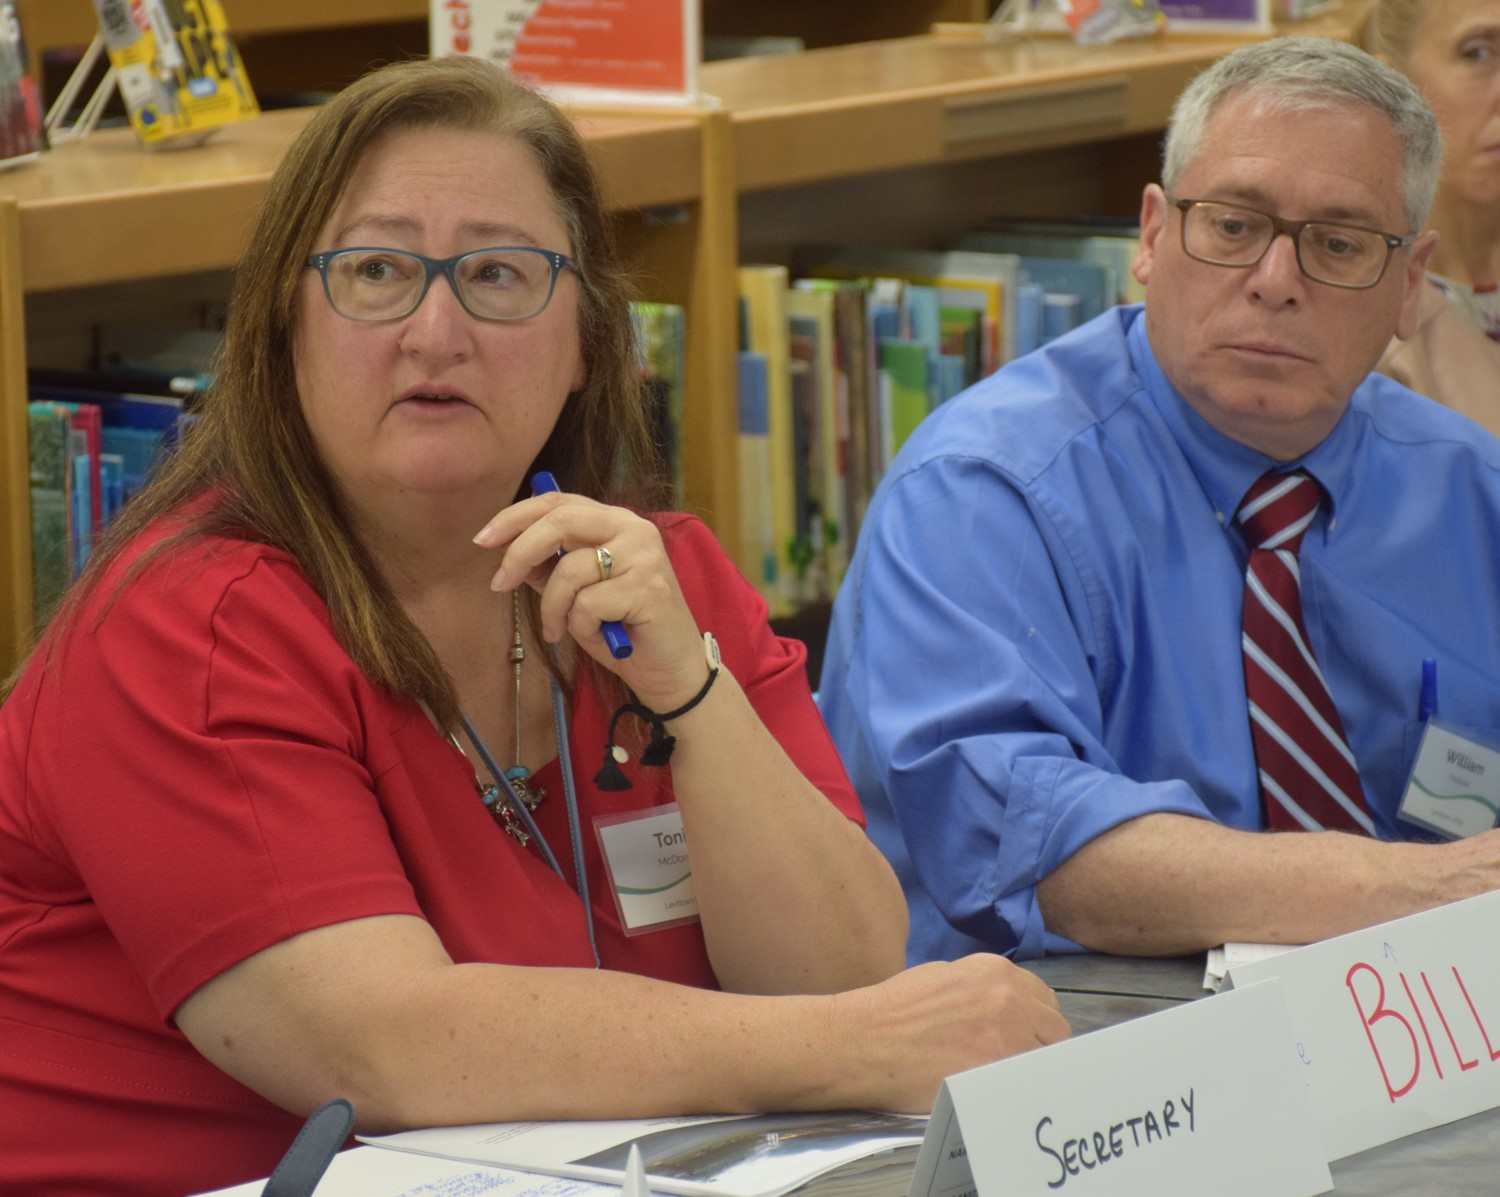 Levittown Superintendent Dr. Tonie McDonald and Assistant Superintendent Bill Pastore participated in discussions about a mock emergency scenario.